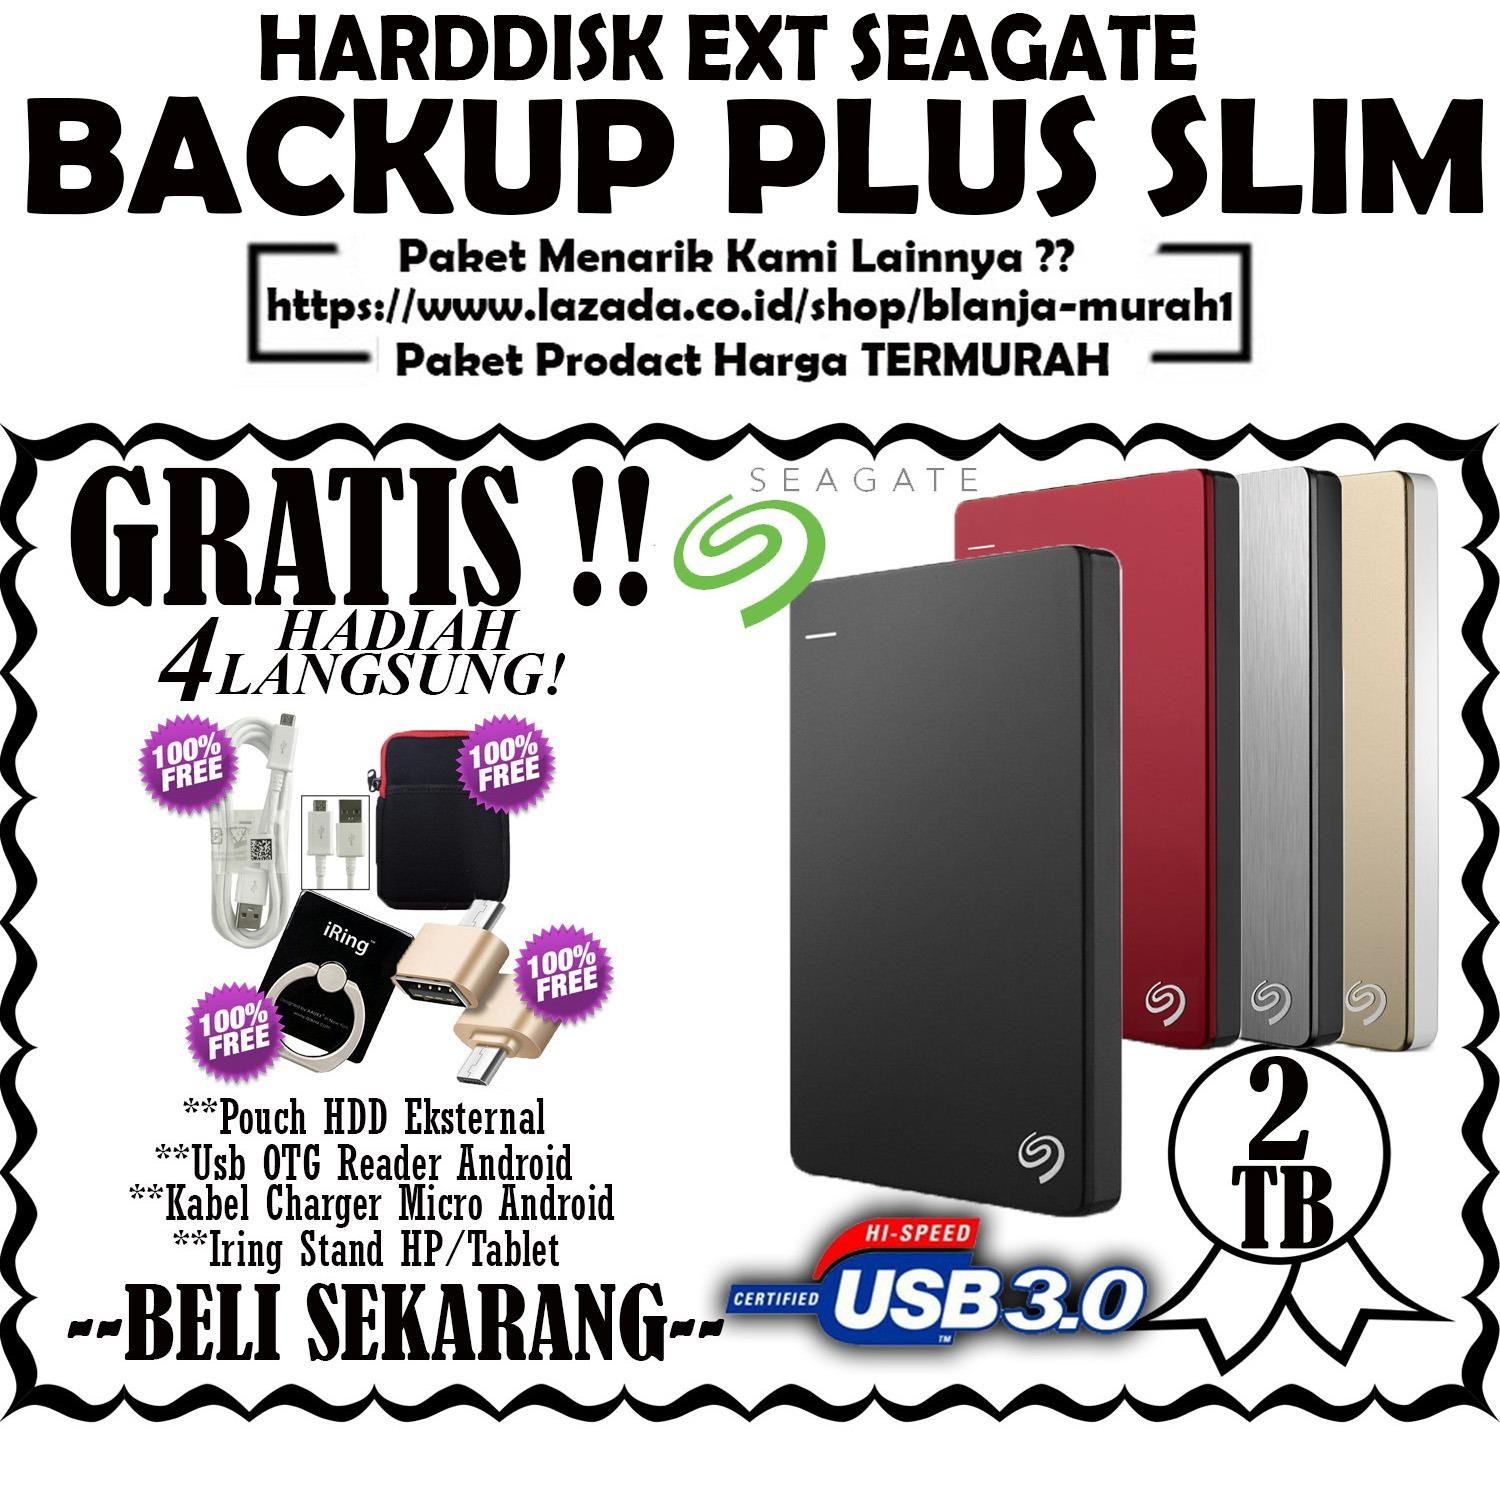 Kualitas Seagate Backup Plus Slim 2Tb Hdd Hd Hardisk External 2 5 Gratis Pouch Hdd Kabel Charger Micro Android Usb Otg Reader Android Iring Stand Hp Tablet Seagate